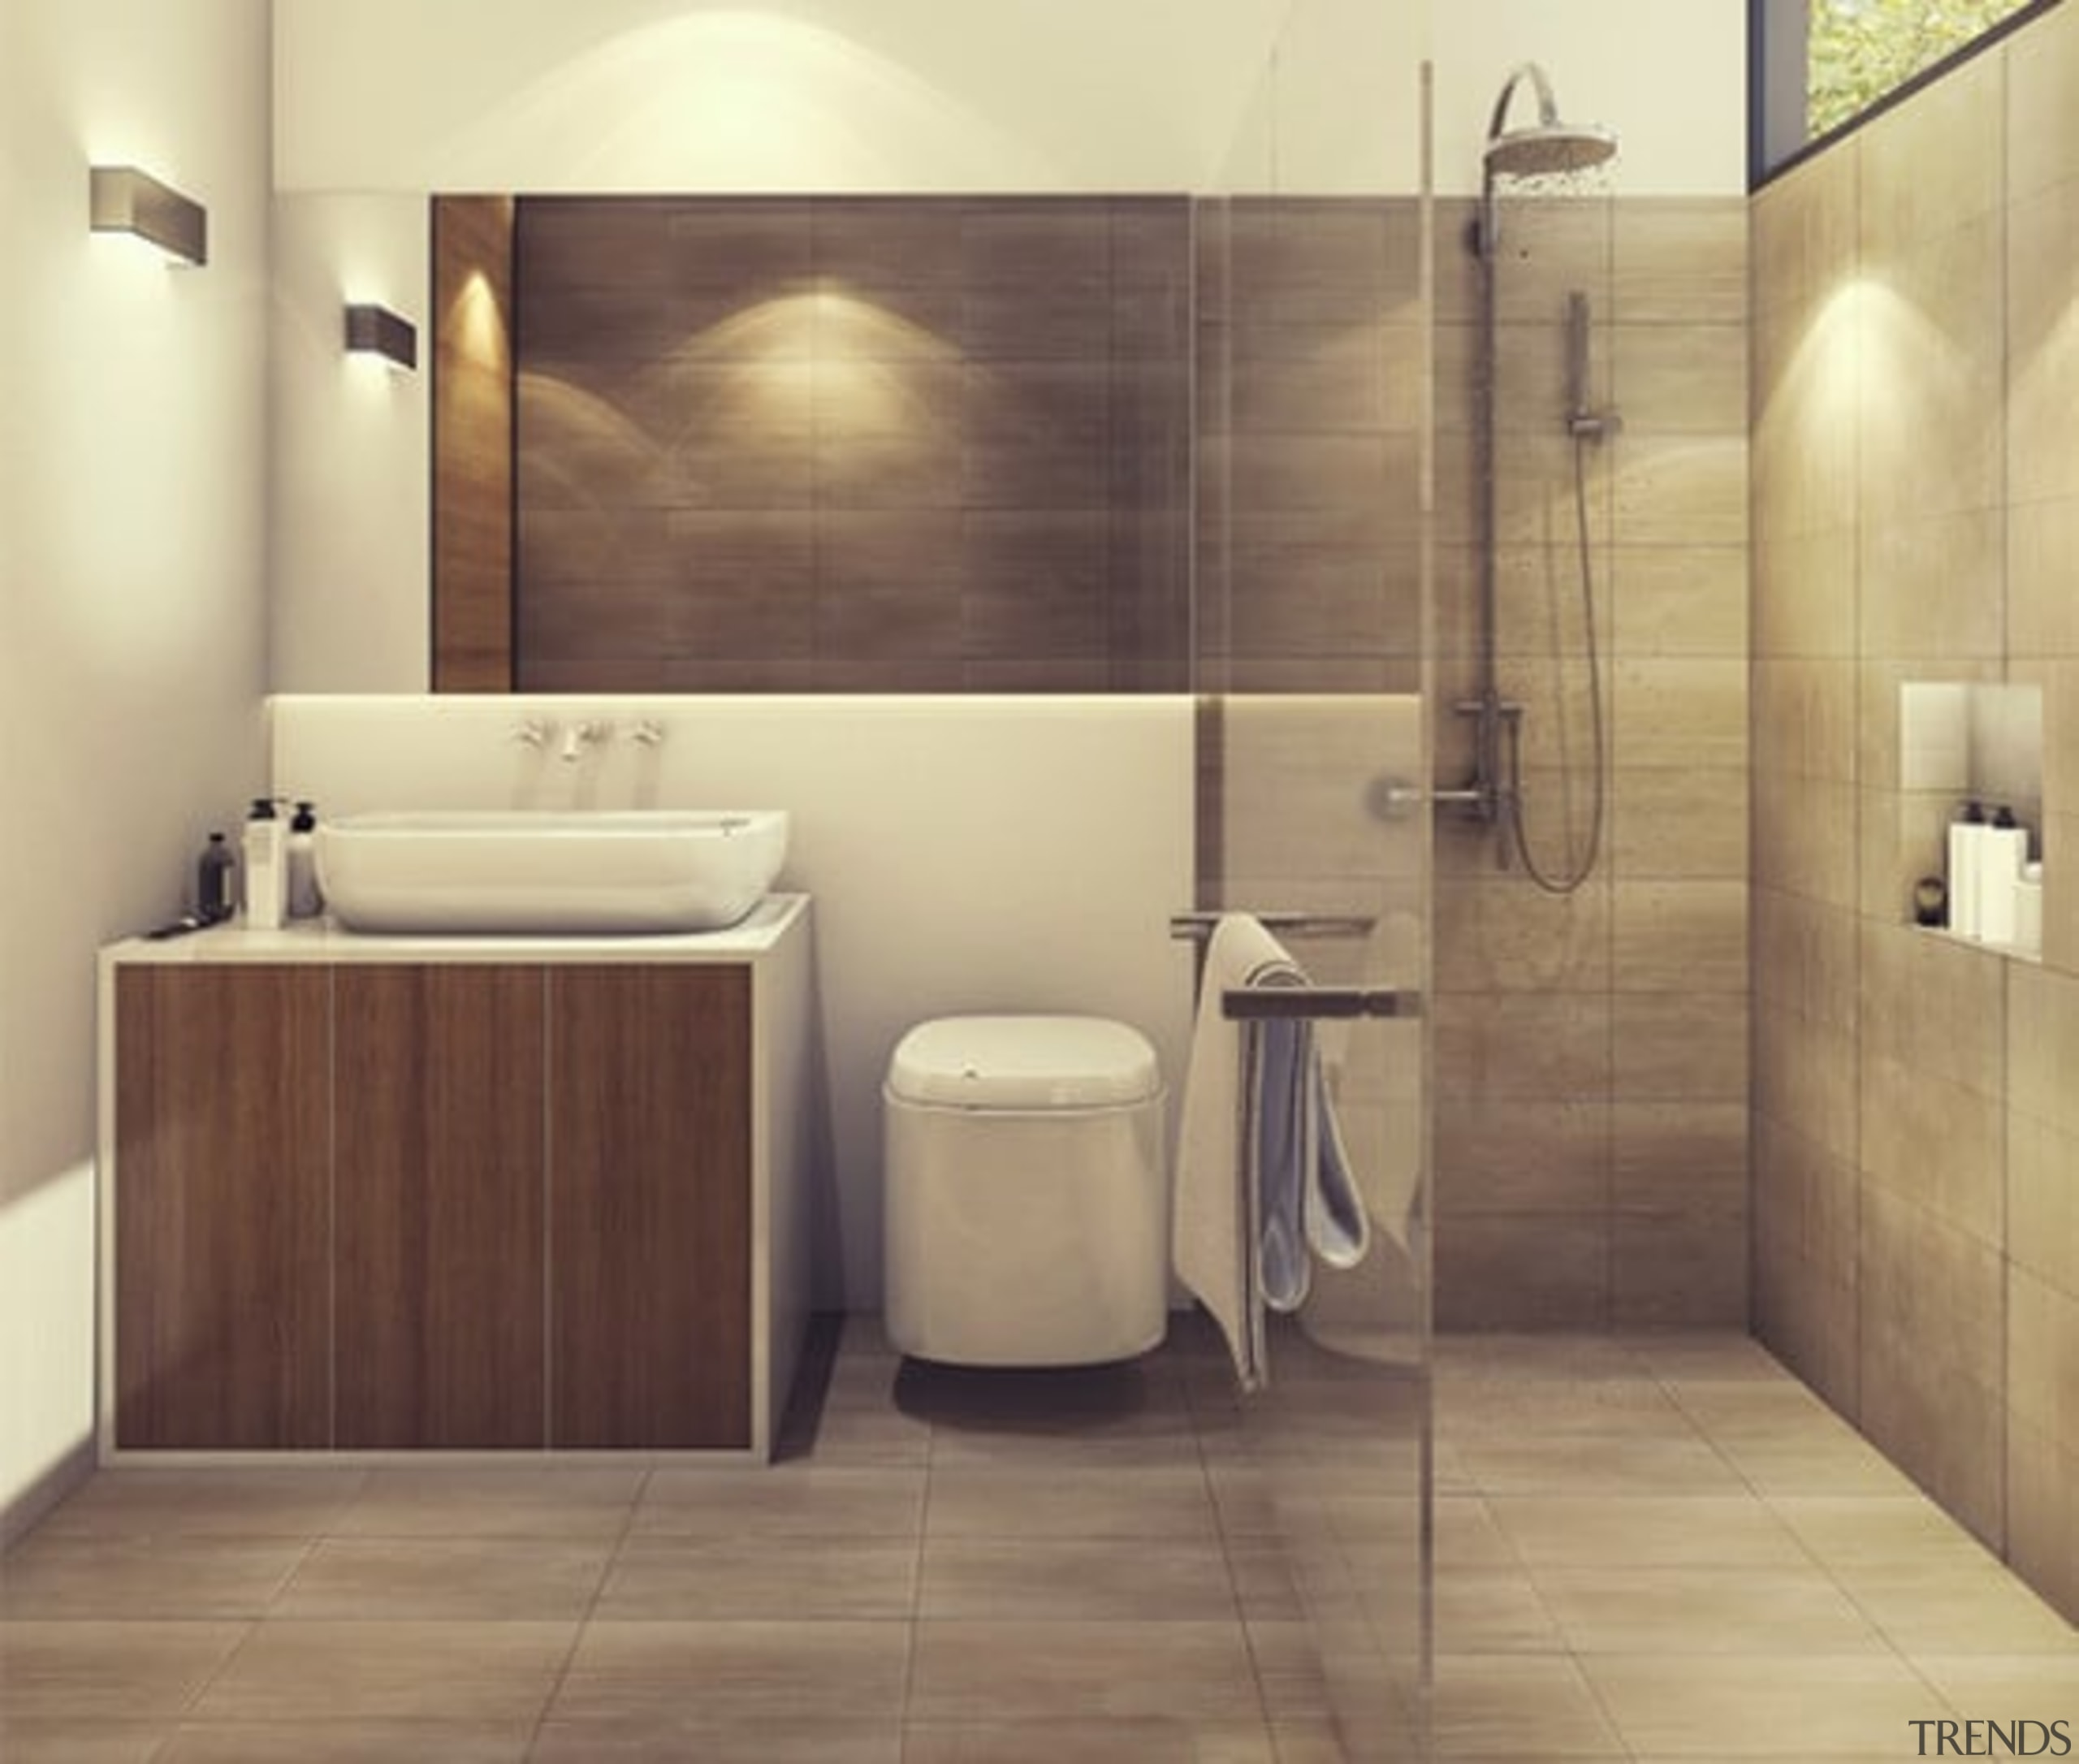 Bathroom Heating - bathroom | floor | flooring bathroom, floor, flooring, interior design, plumbing fixture, room, sink, tile, wall, wood flooring, brown, orange